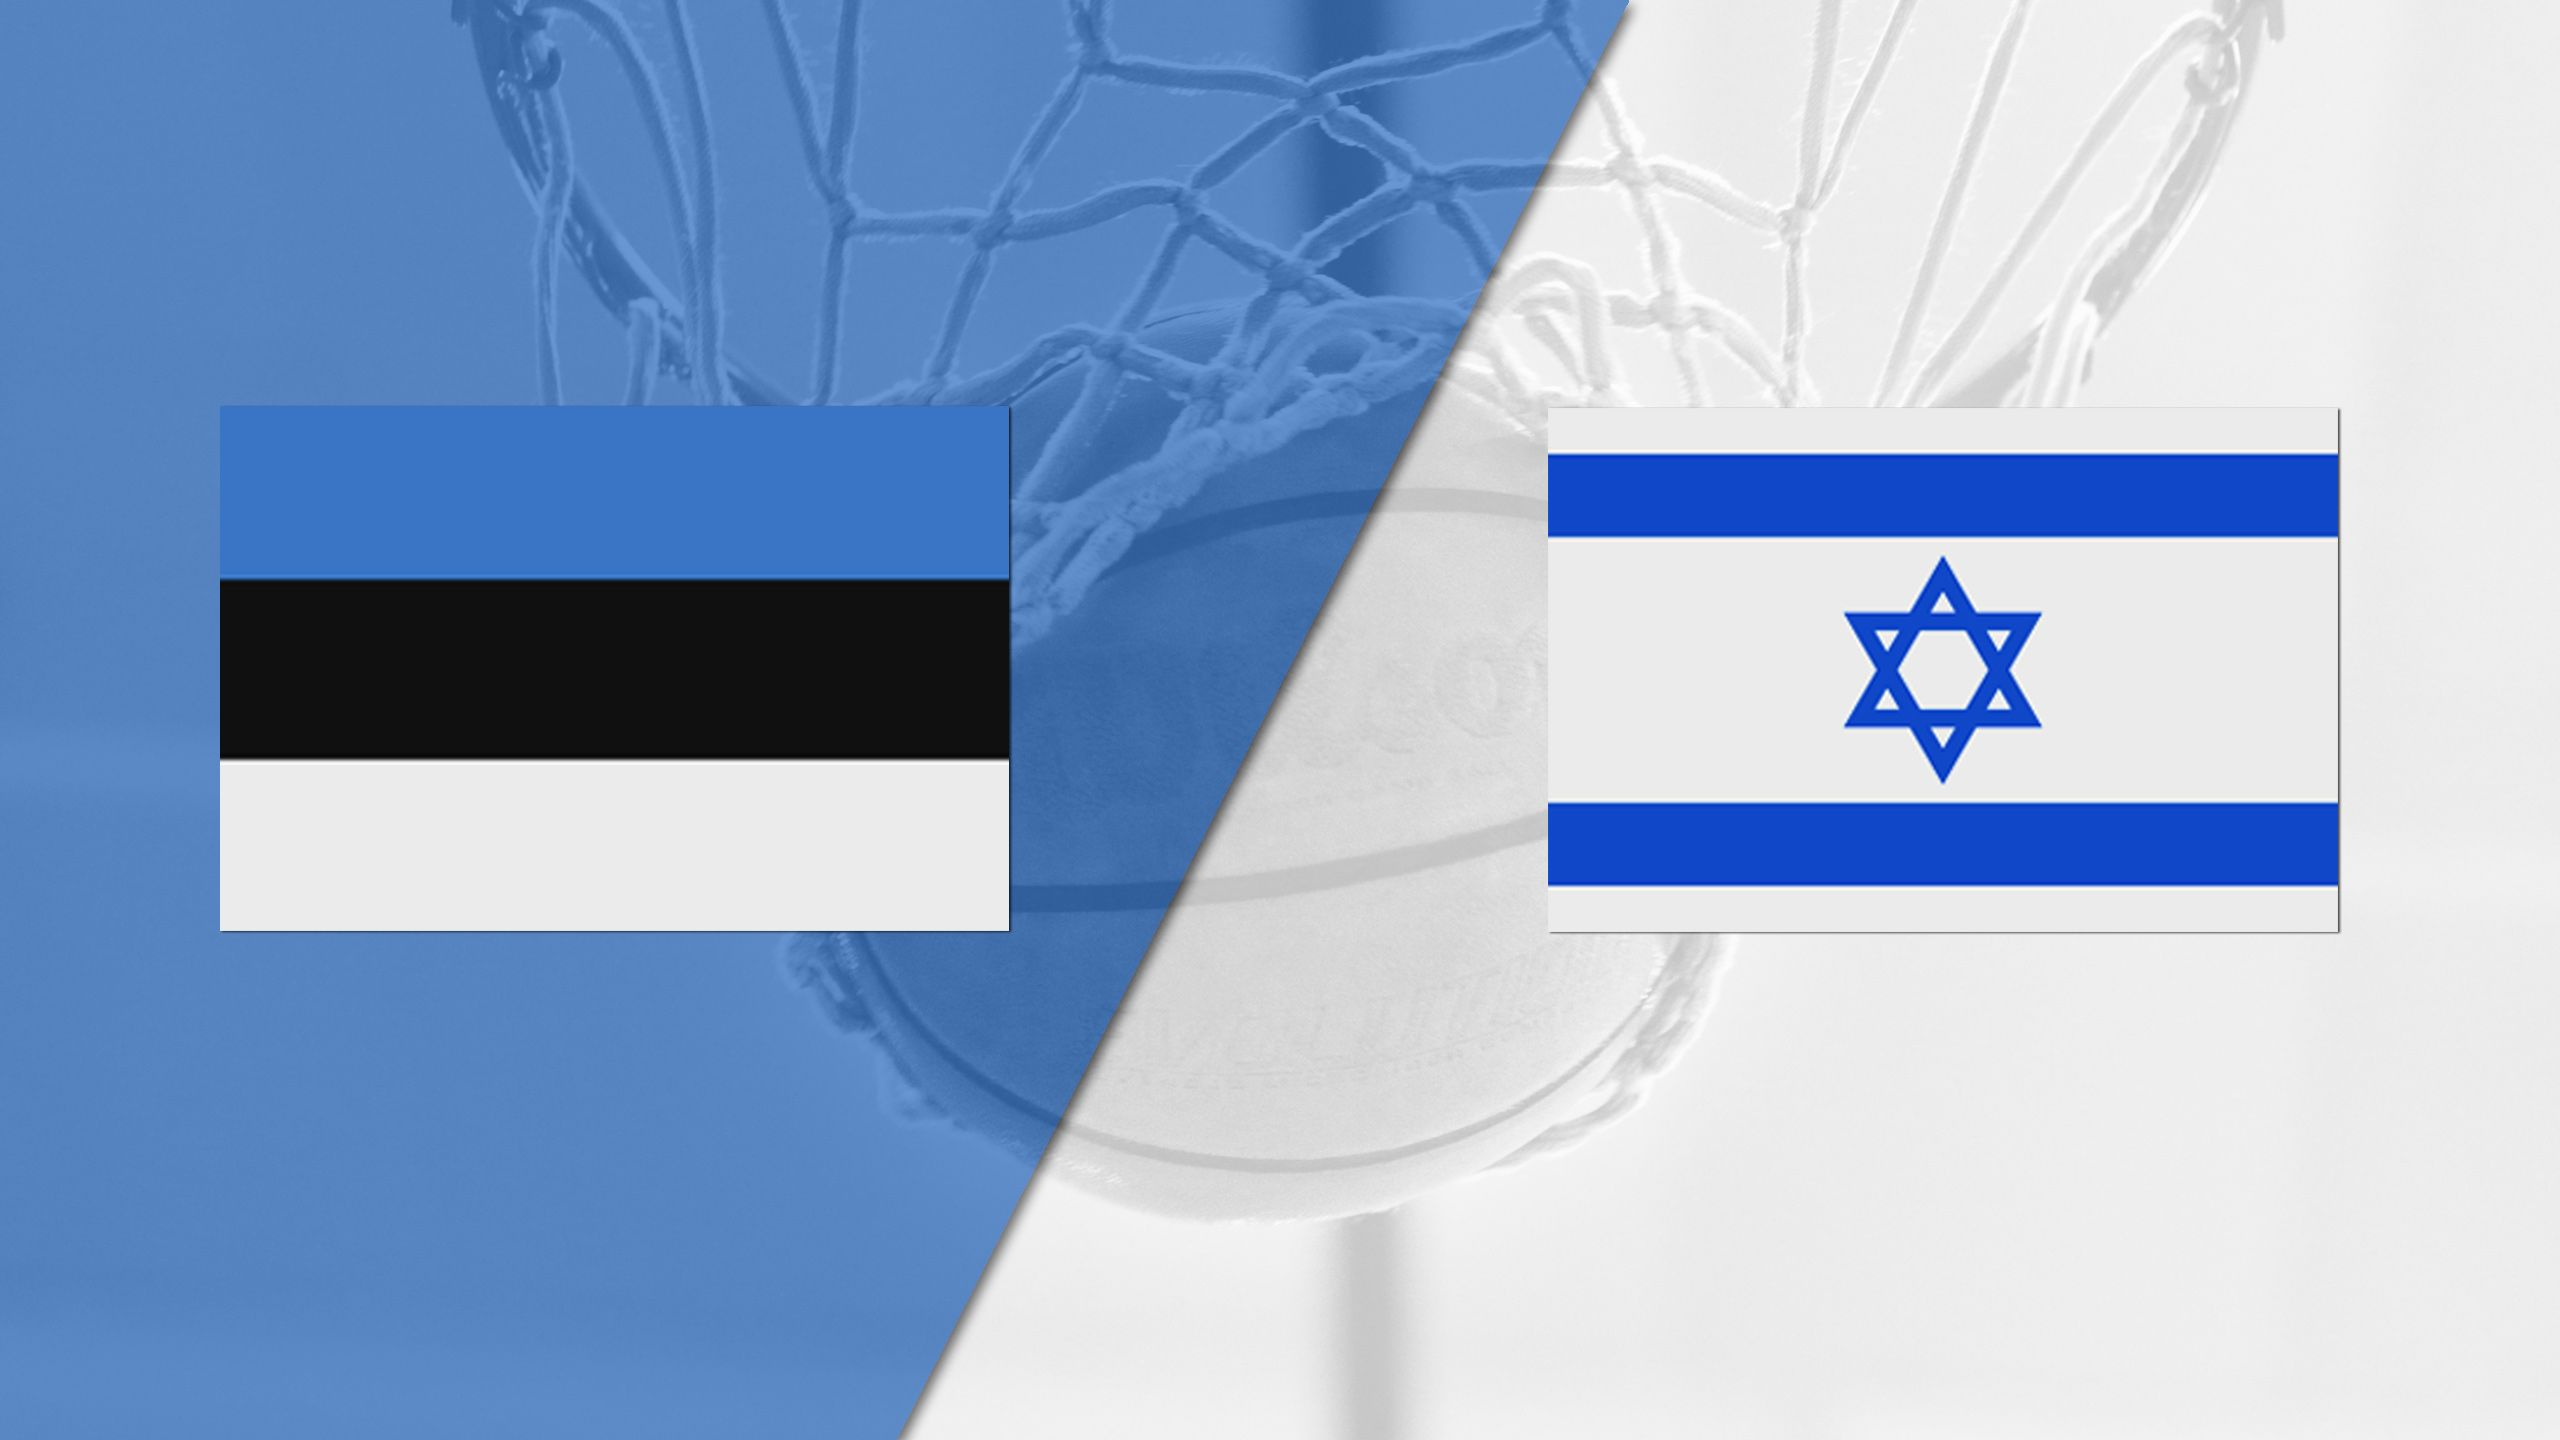 Estonia vs. Israel (FIBA World Cup 2019 Qualifier)